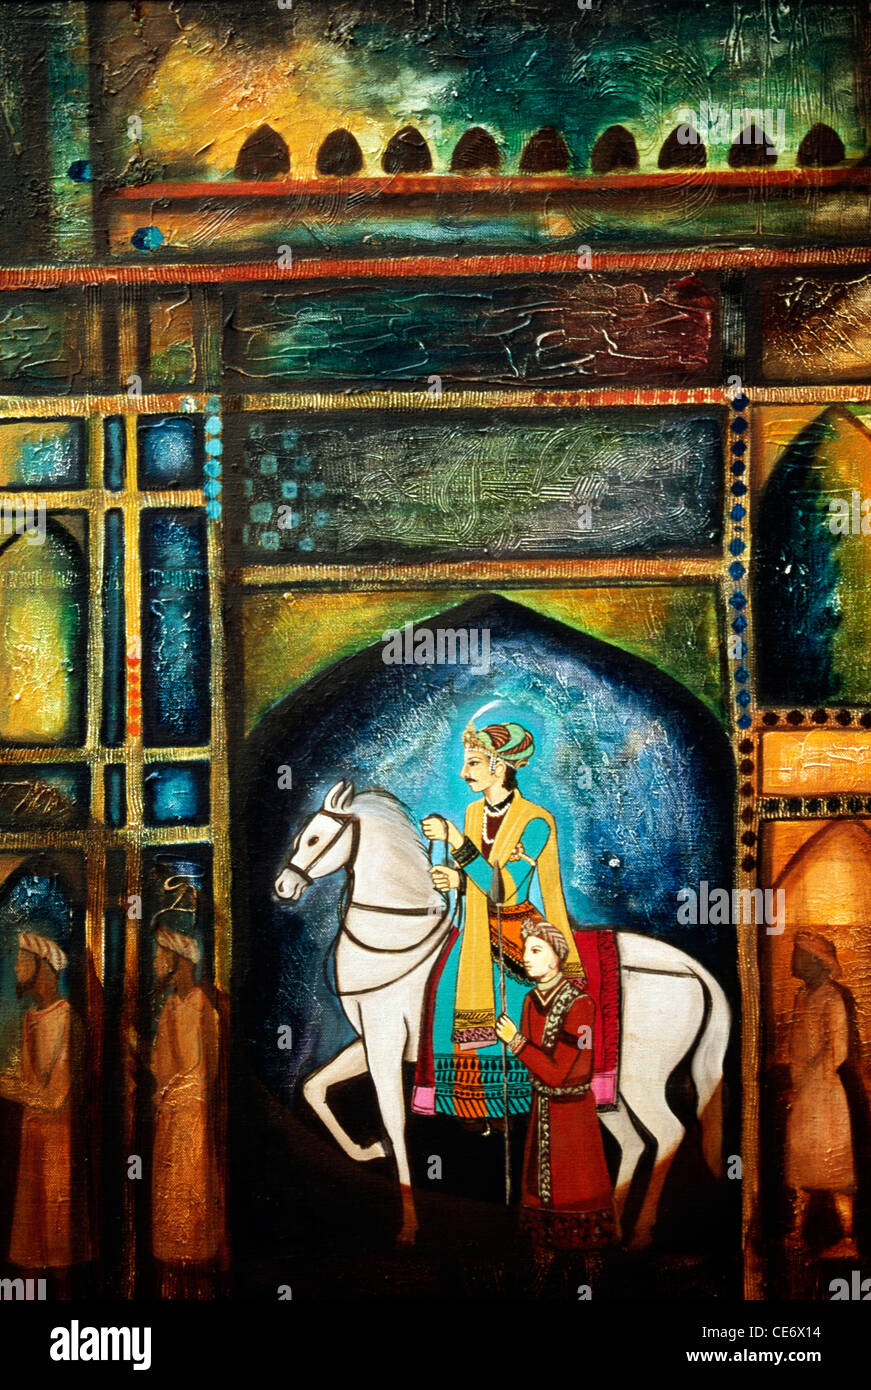 Bdr 83484 Painting Of Indian Royal King On White Stallion Horse Stock Photo Alamy